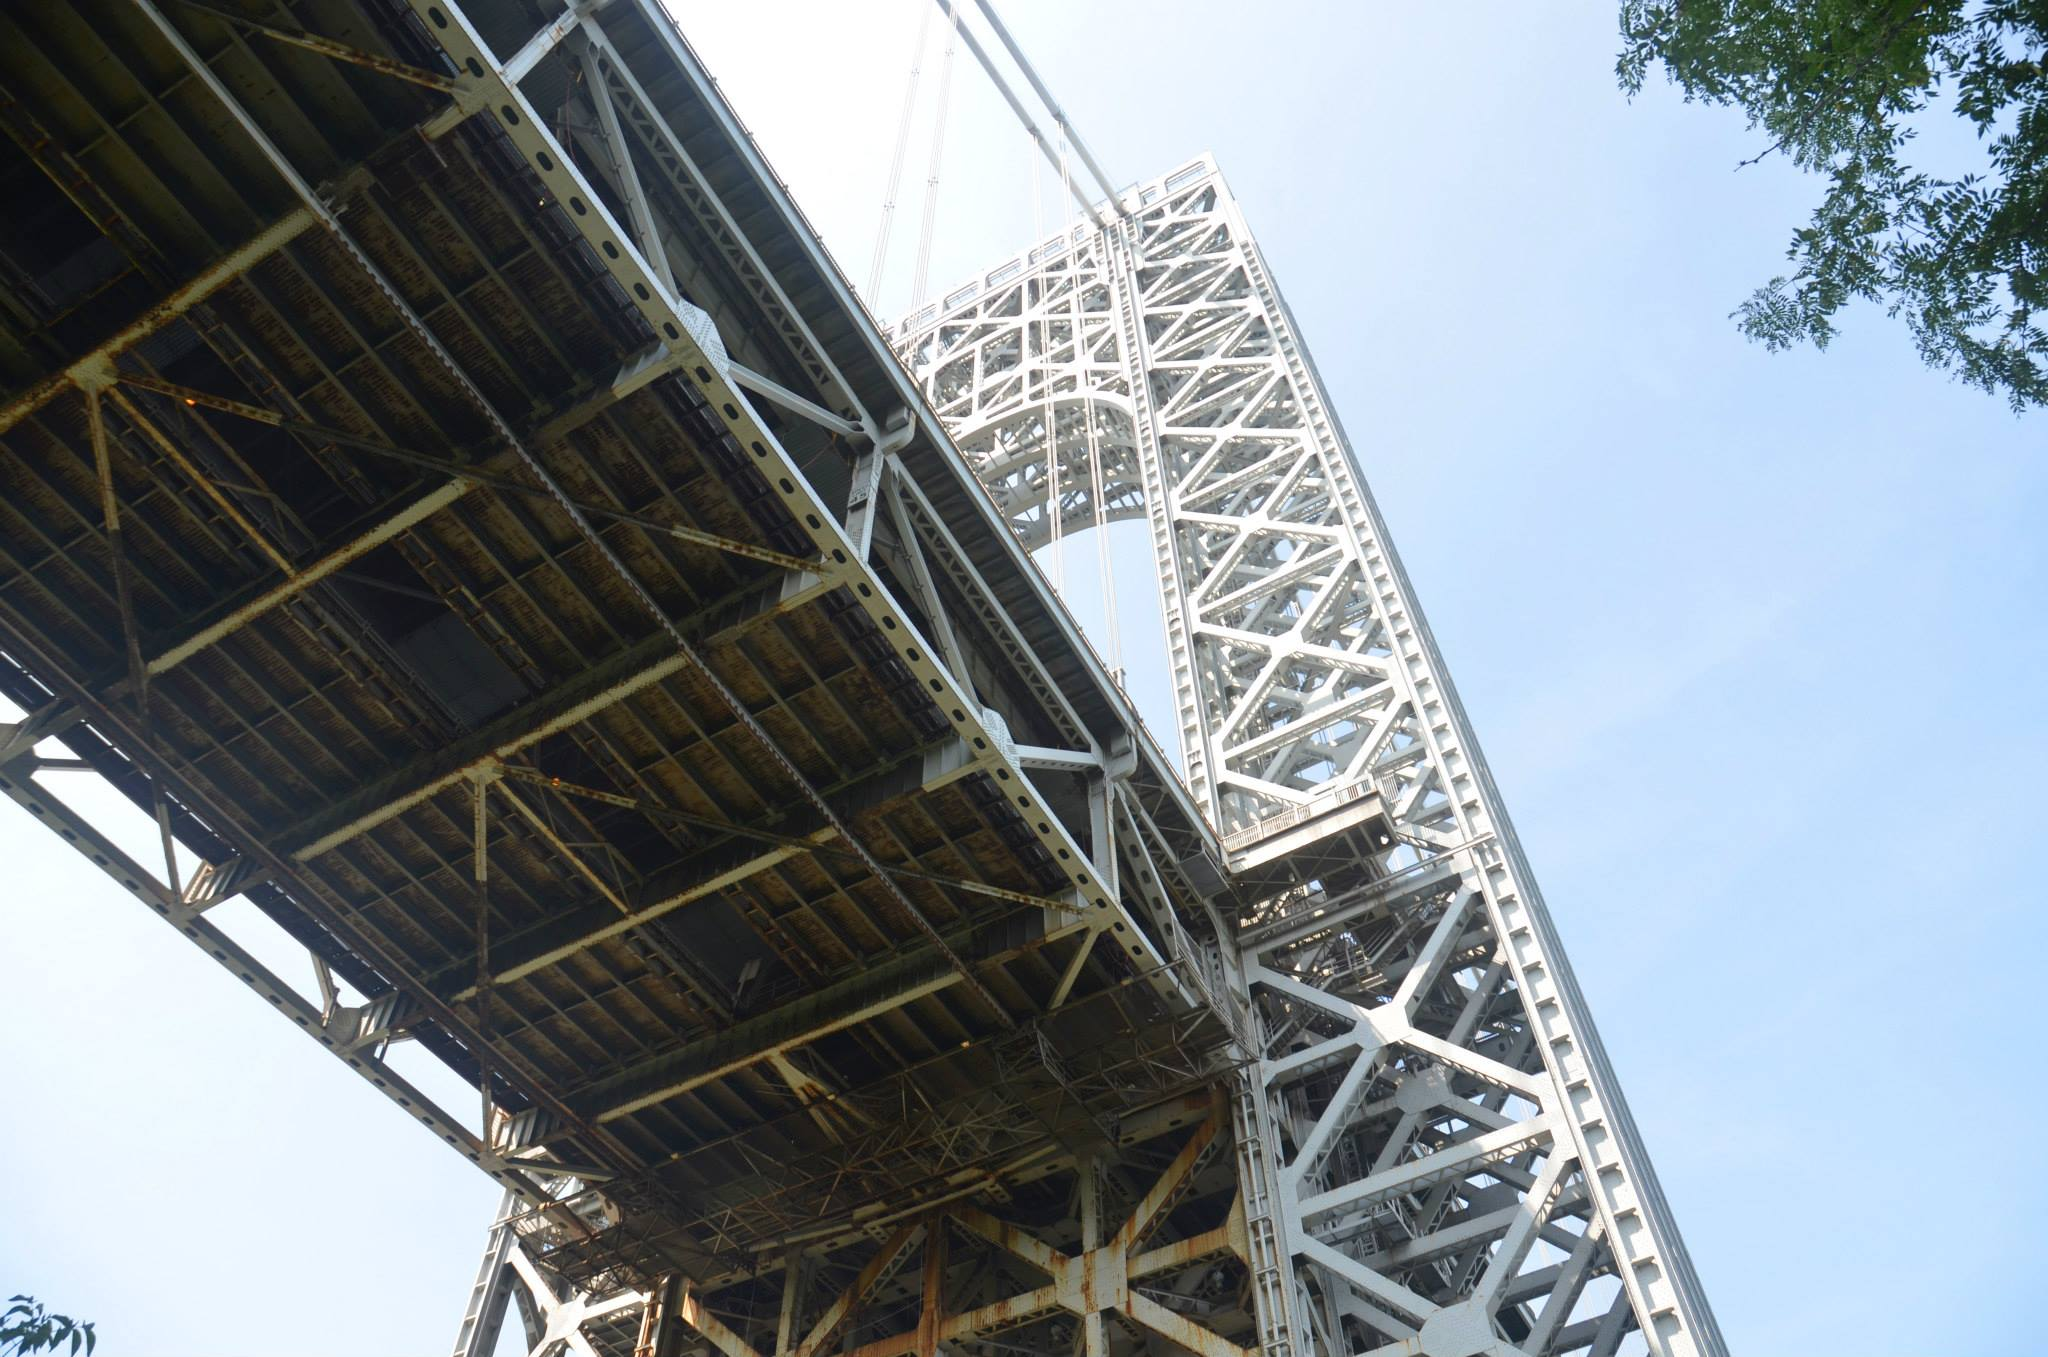 """The George Washington Bridge's New York tower, with a """"traveler"""" on the underside of the roadway. Photo by Evan Bindelglass."""